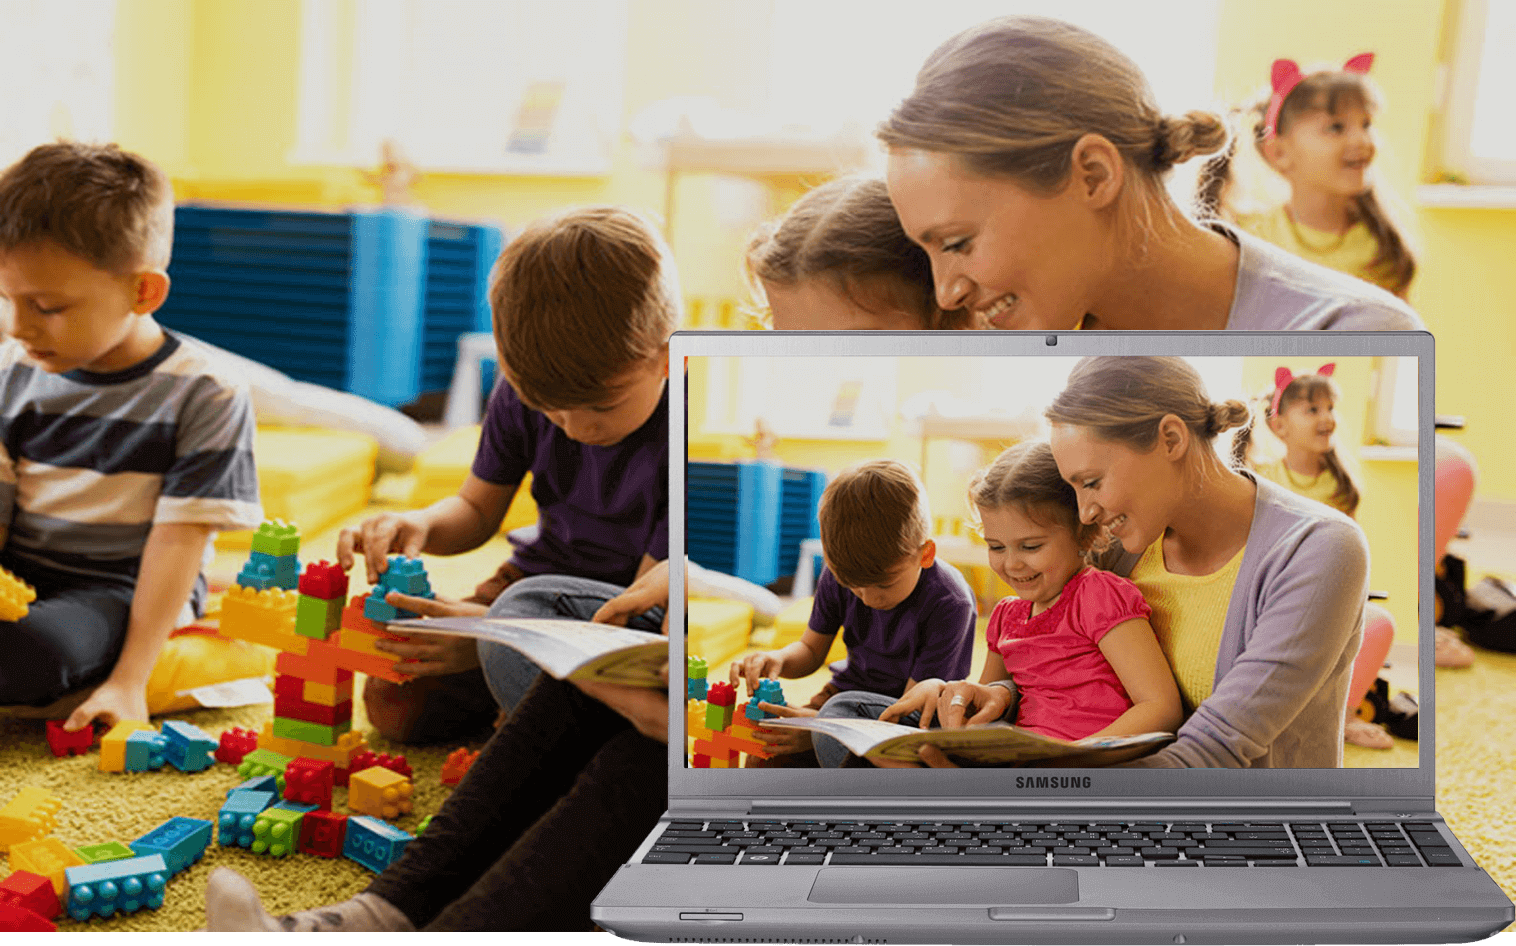 10 Benefits of Digital Childcare Record Keeping